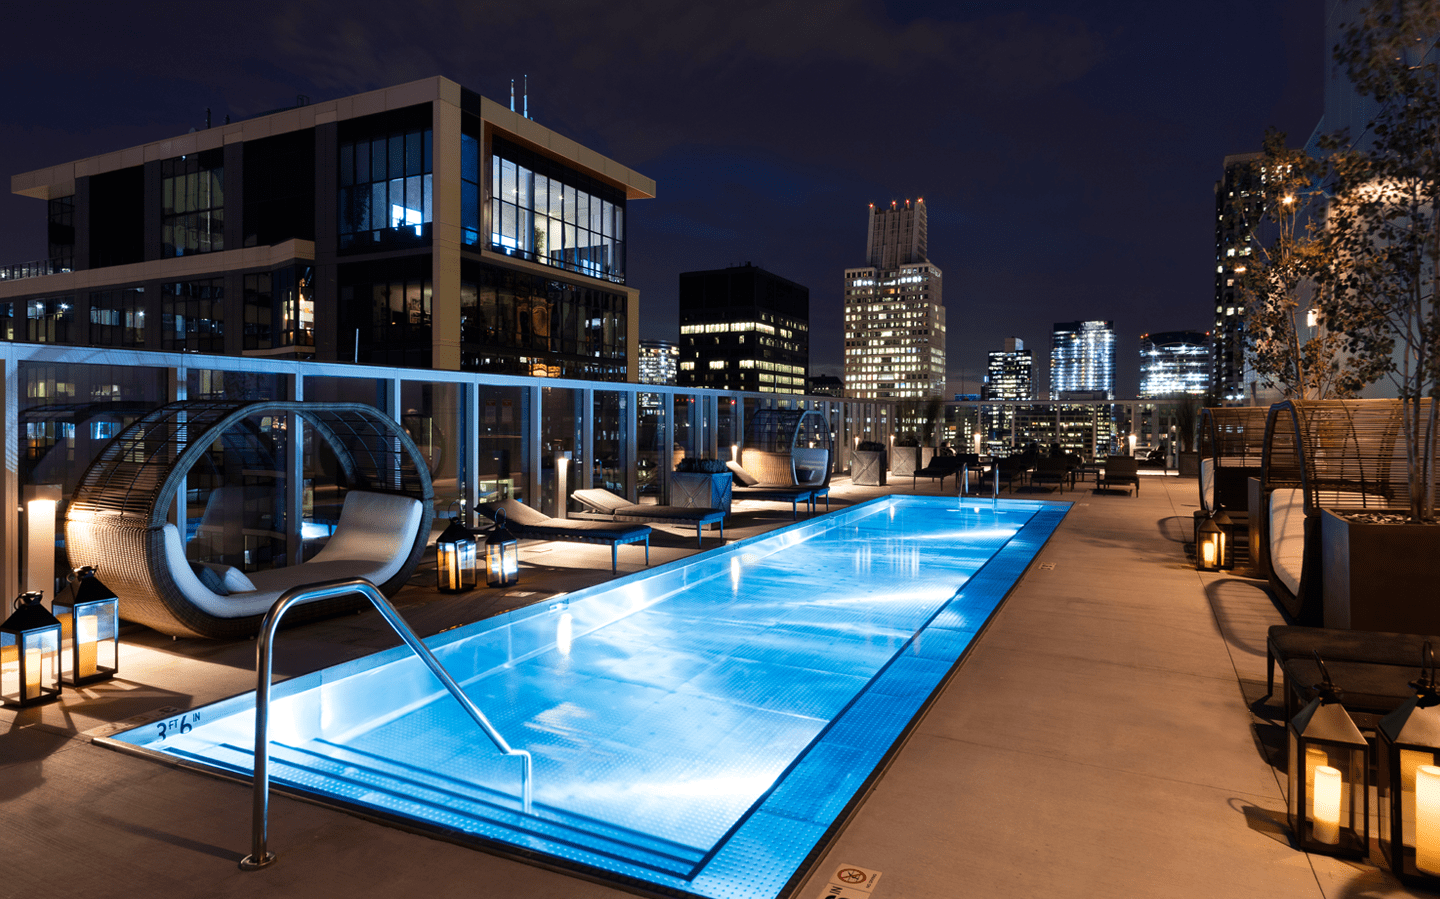 A rooftop pool brightly lit at night